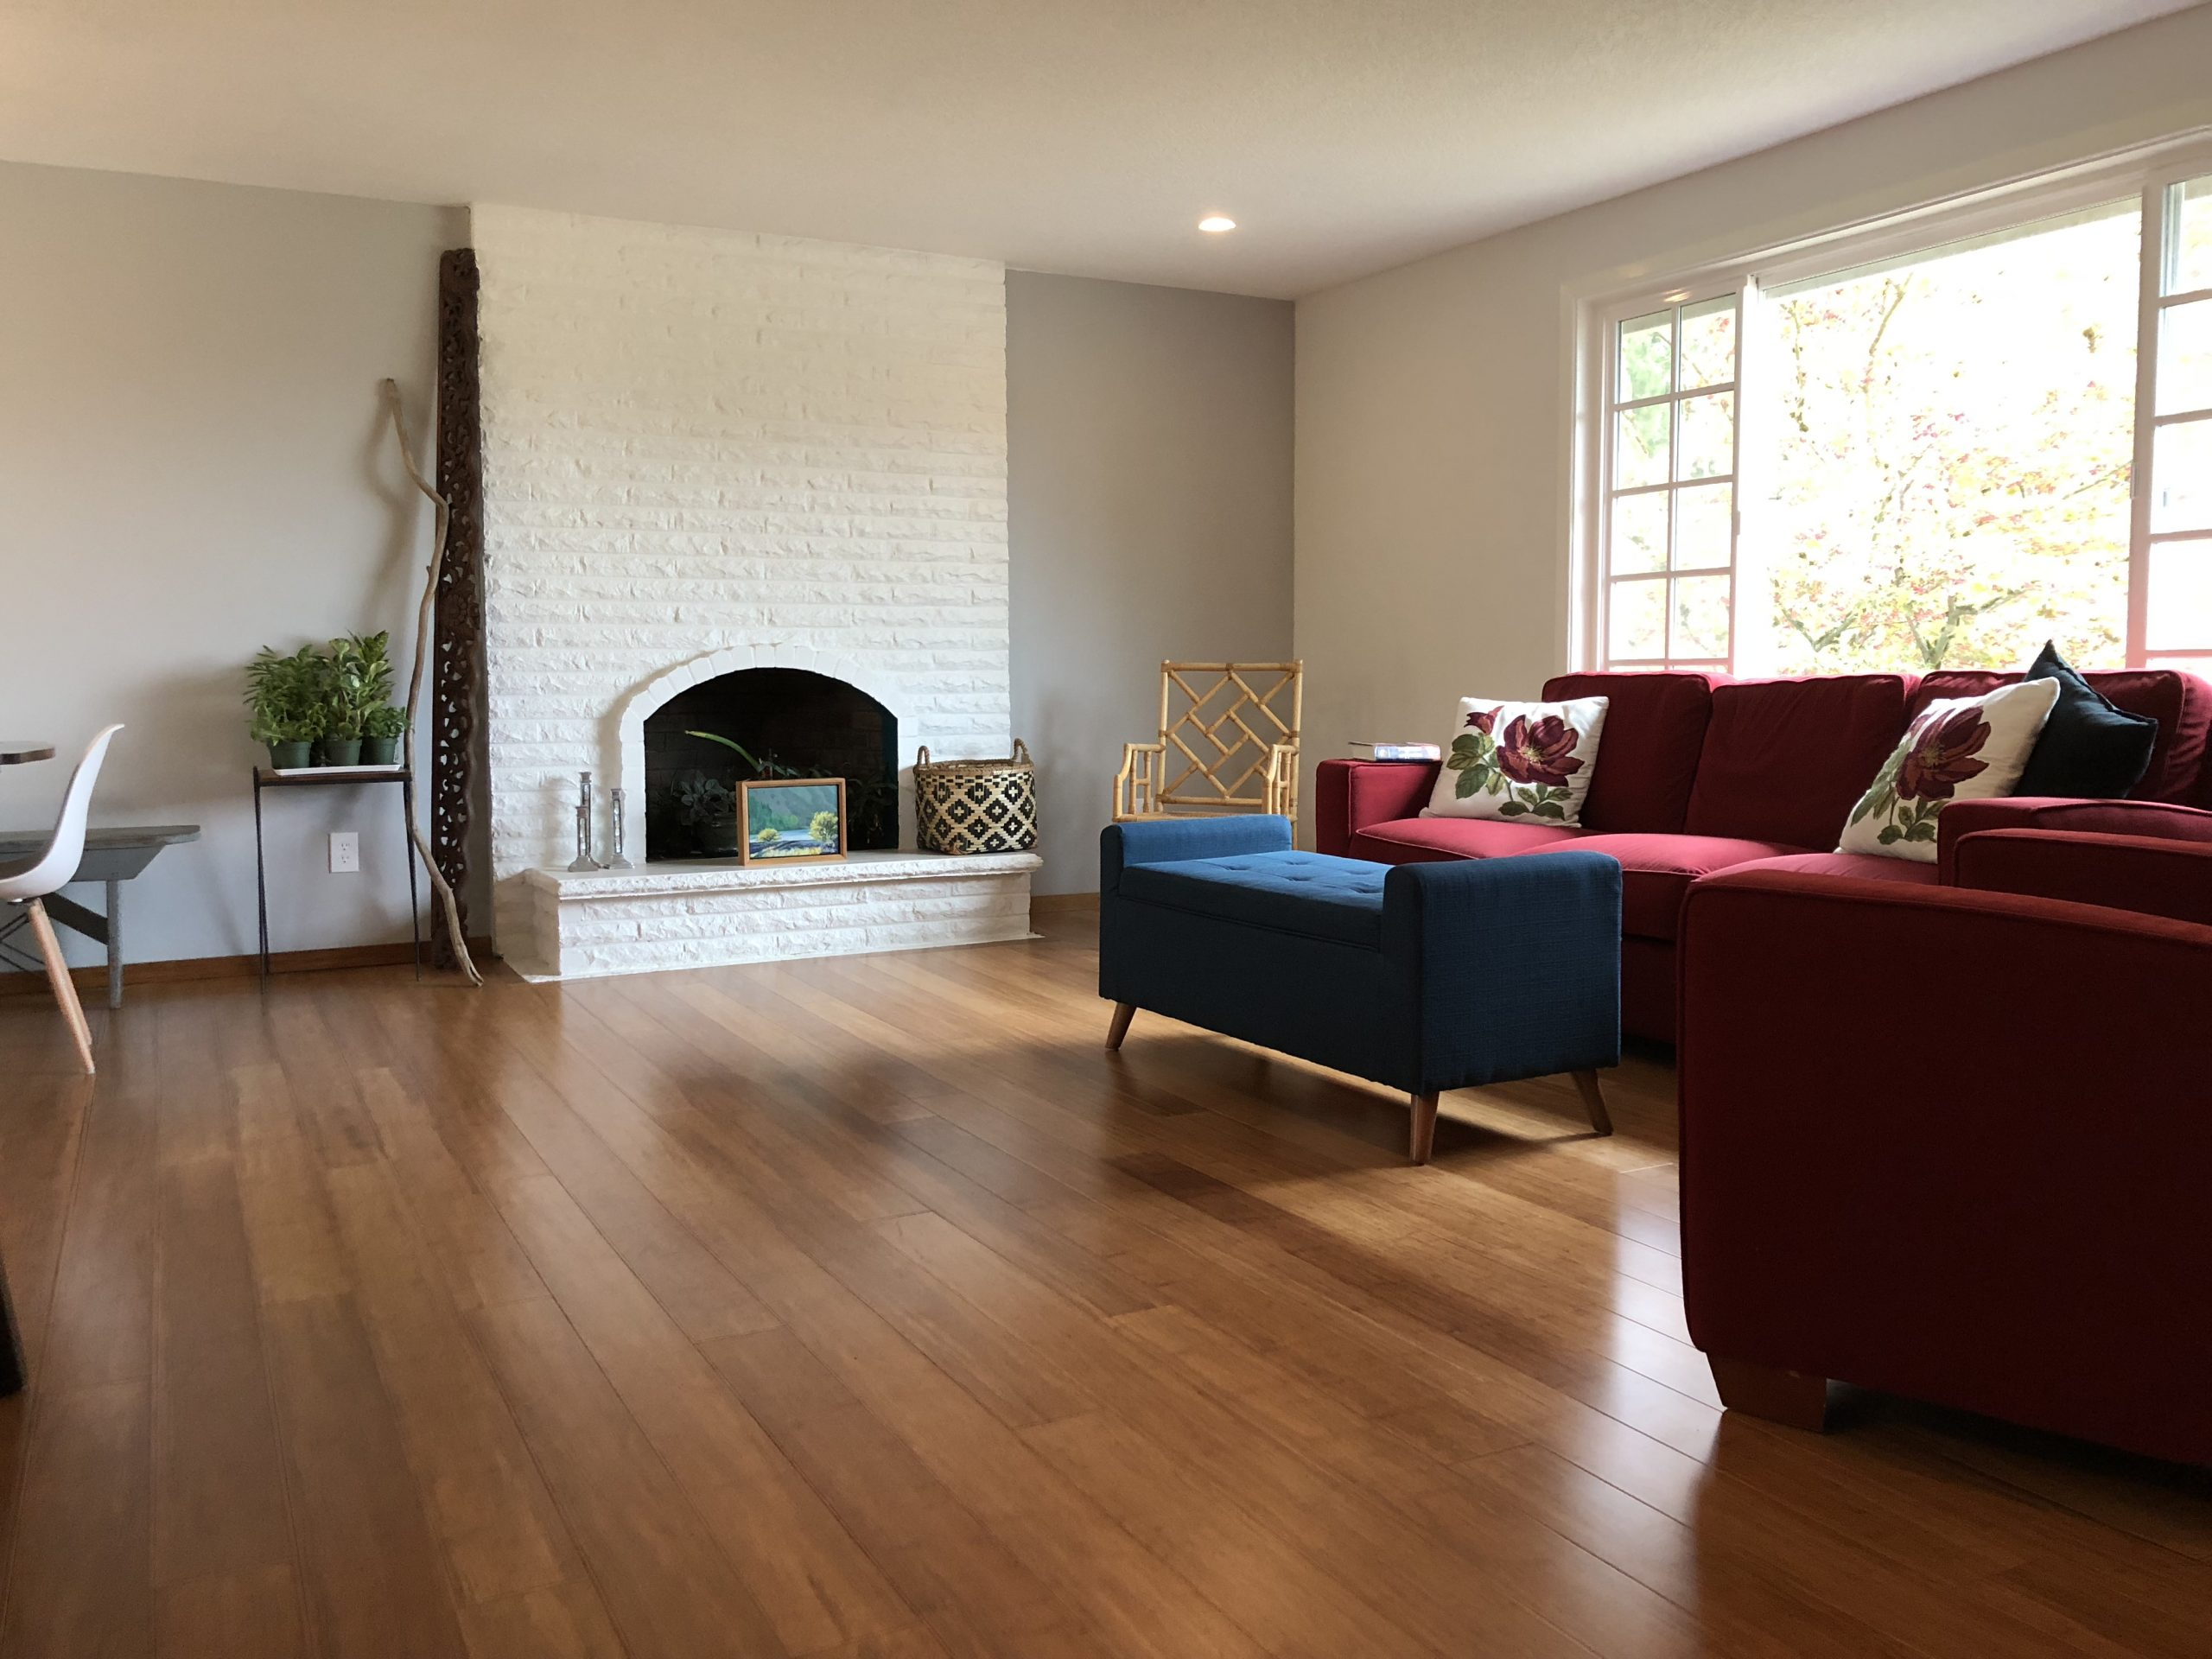 Why Get Your Floors Cleaned After Your Home Floods?